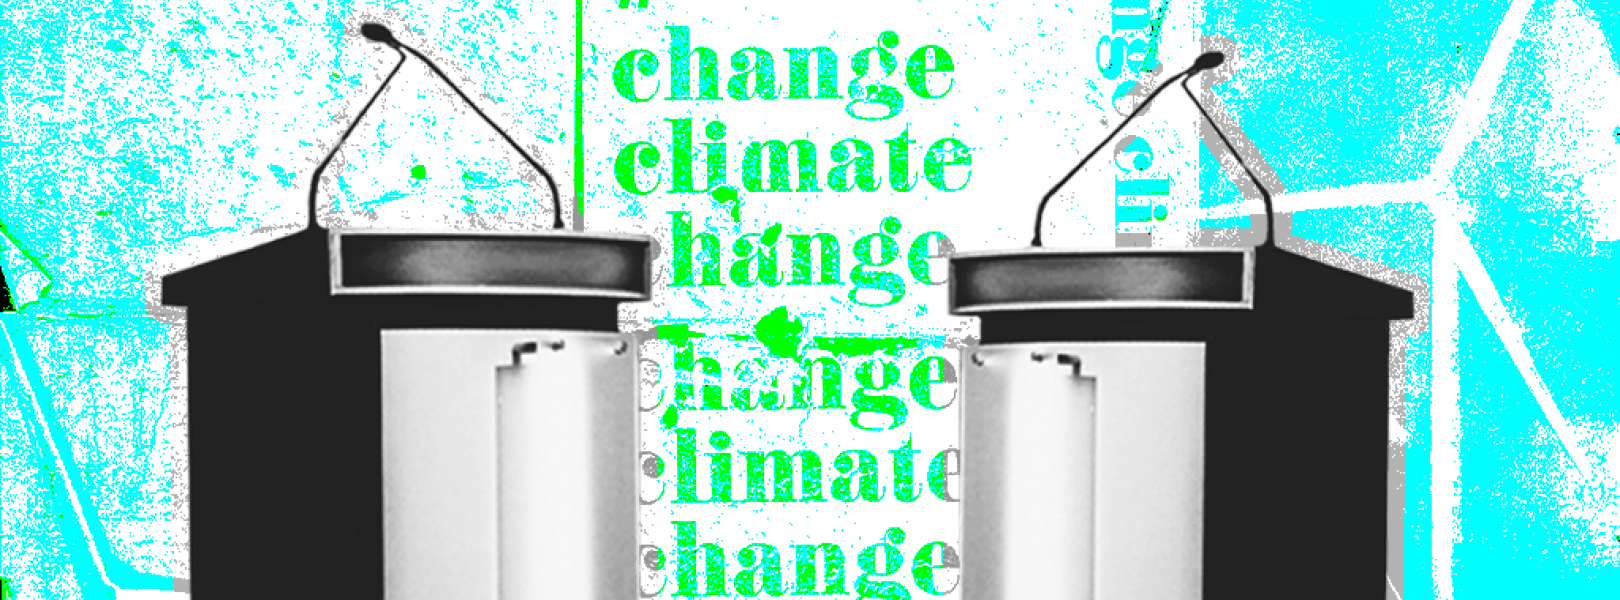 General election debate viewers demand and deserve a substantive discussion on climate and energy policy